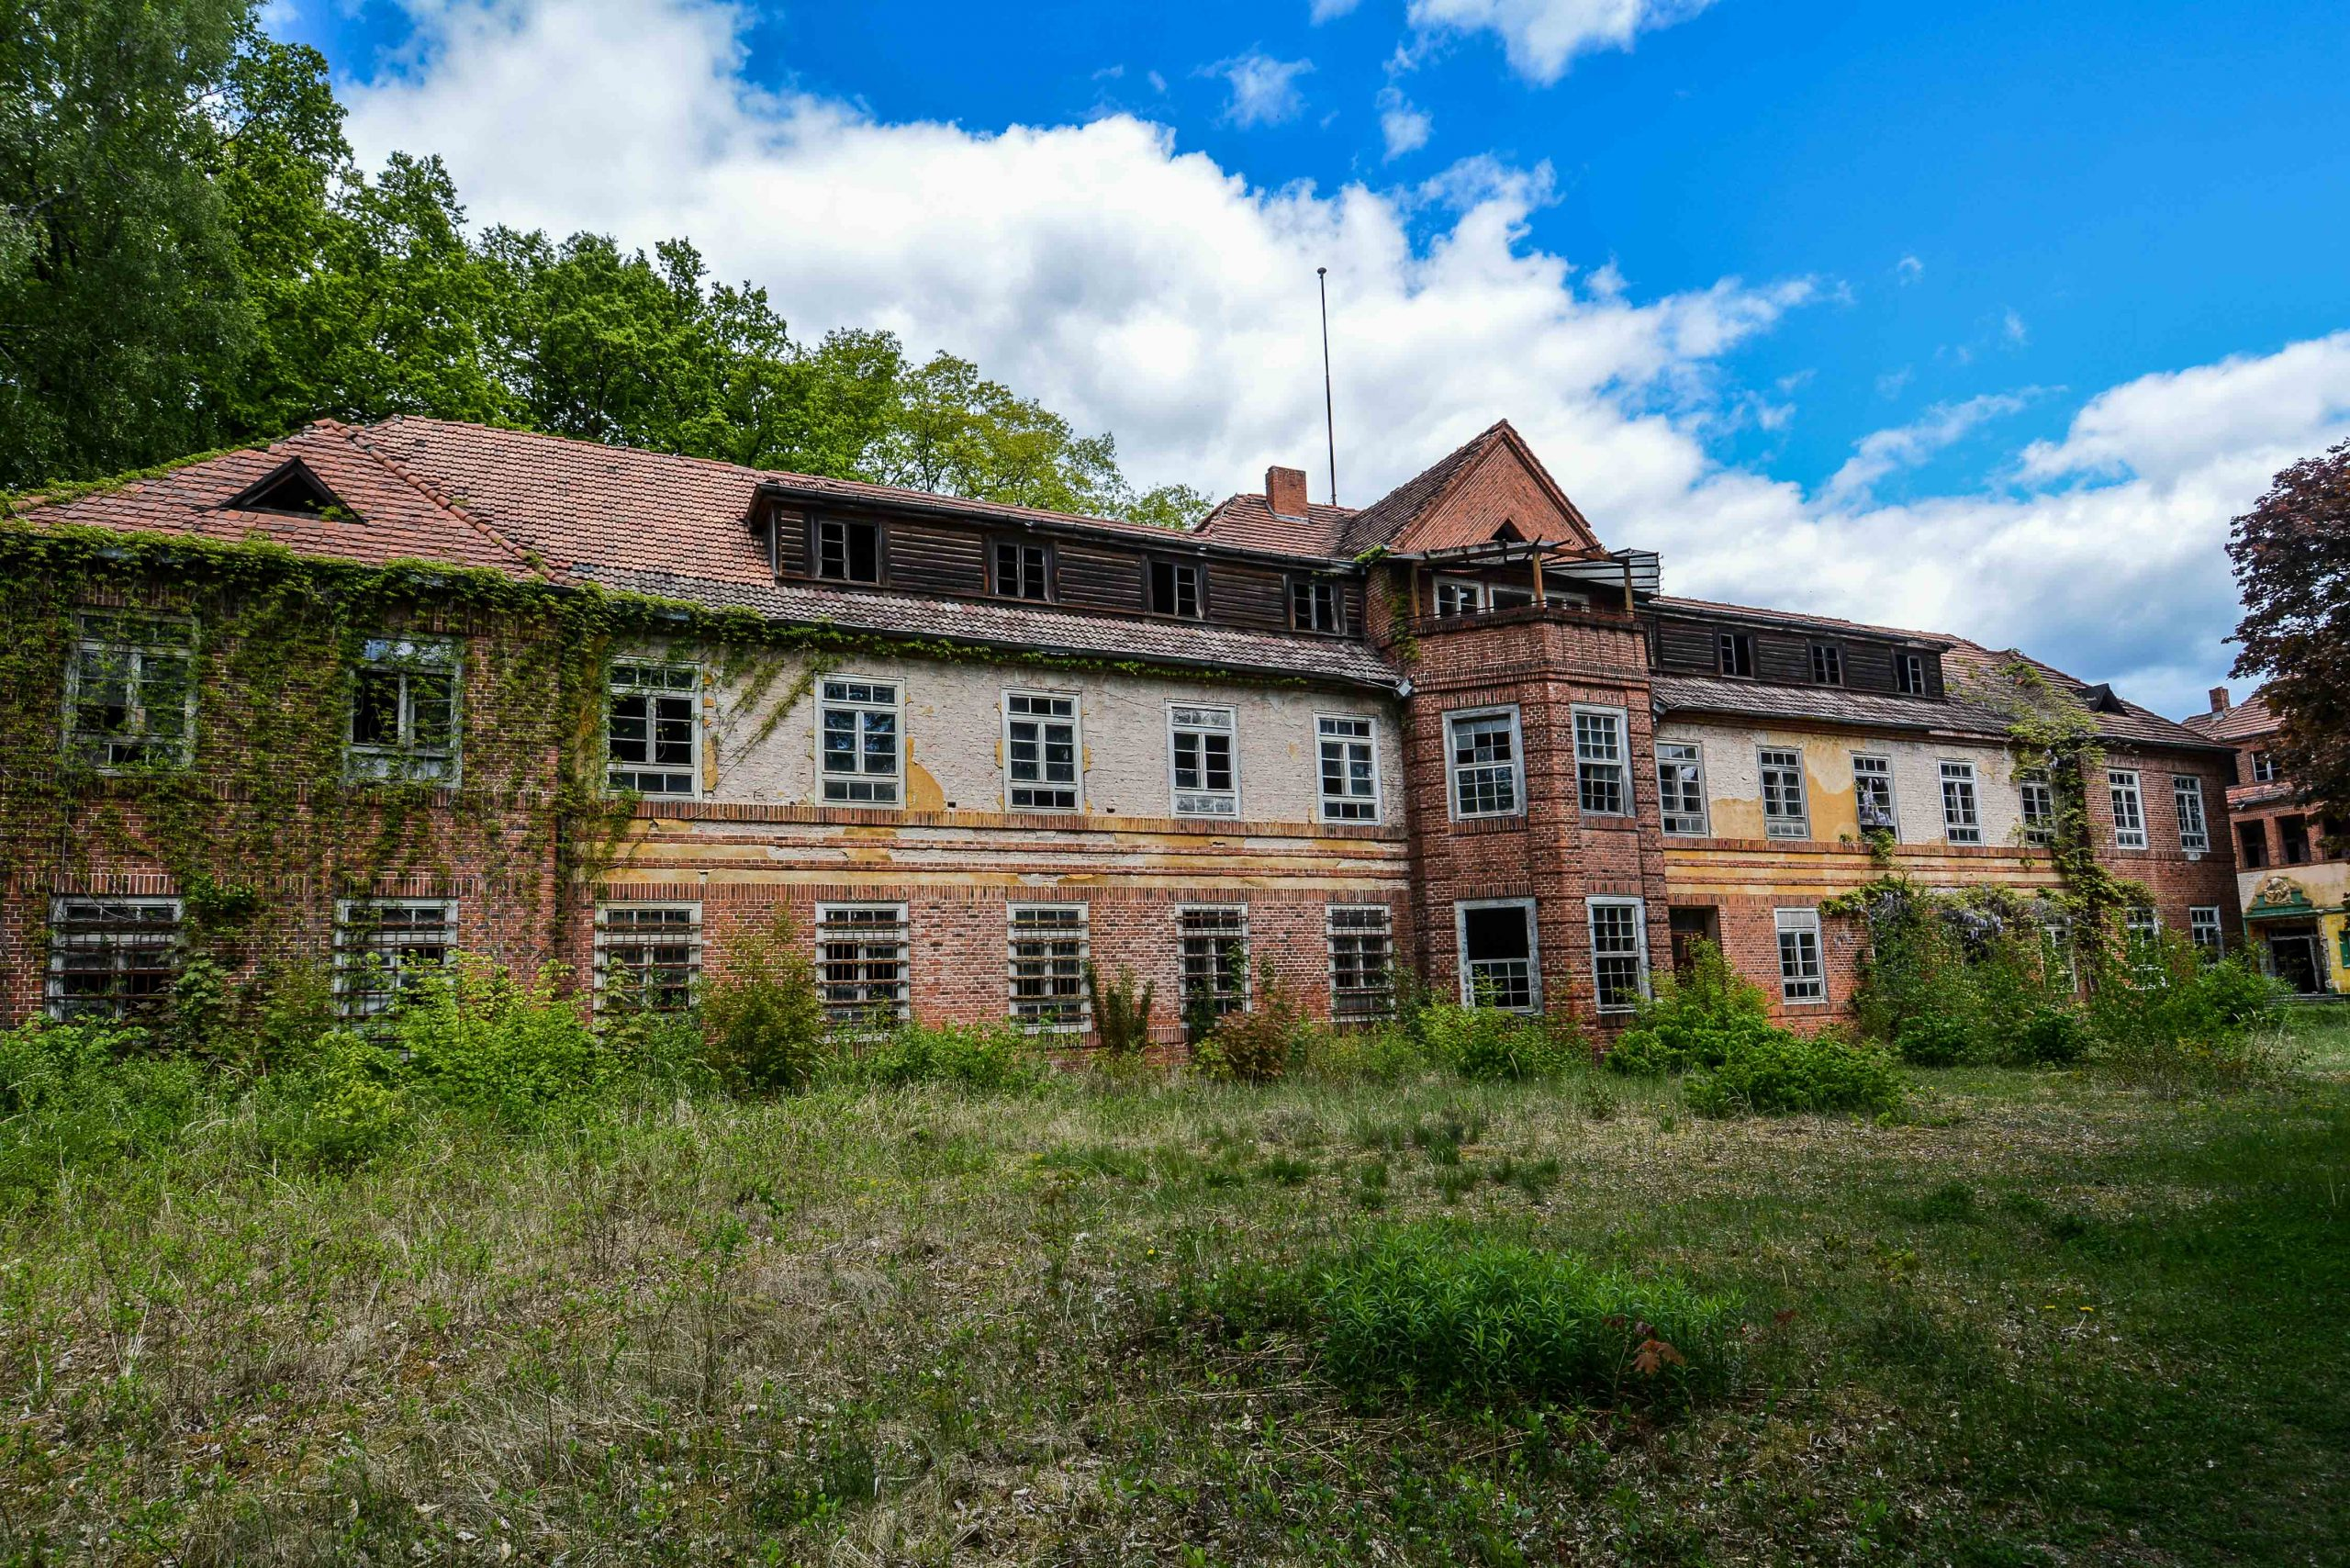 front view sanatorium wing tuberkulose heilstaette grabowsee sanatorium hospital oranienburg lost places abandoned urbex brandenburg germany deutschland